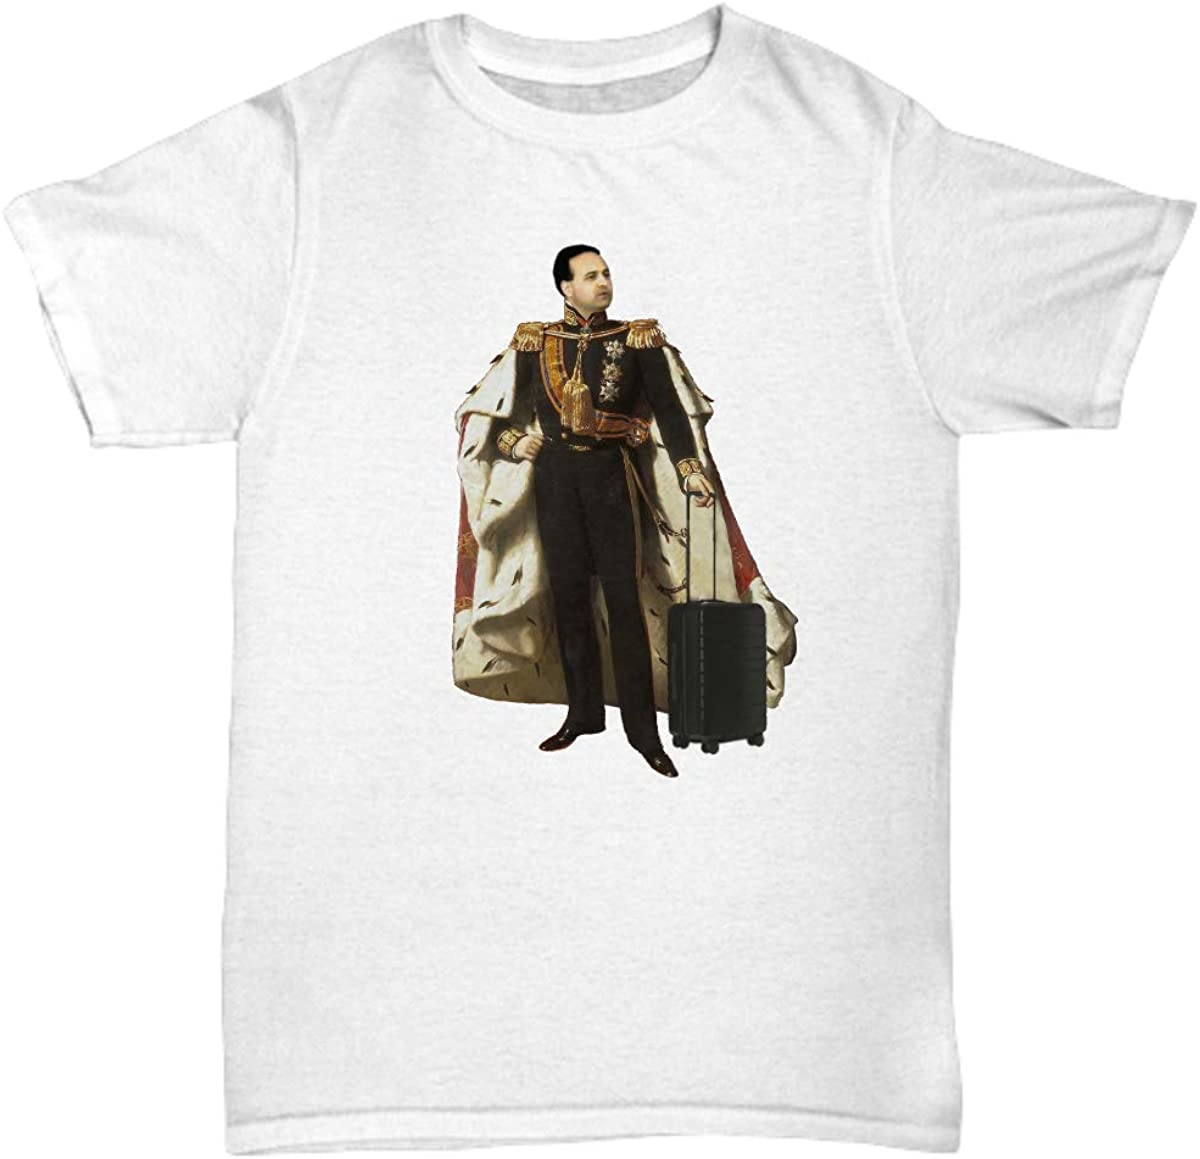 B07TZMLR52 The King of The Airport T-Shirt 516iMjter2L